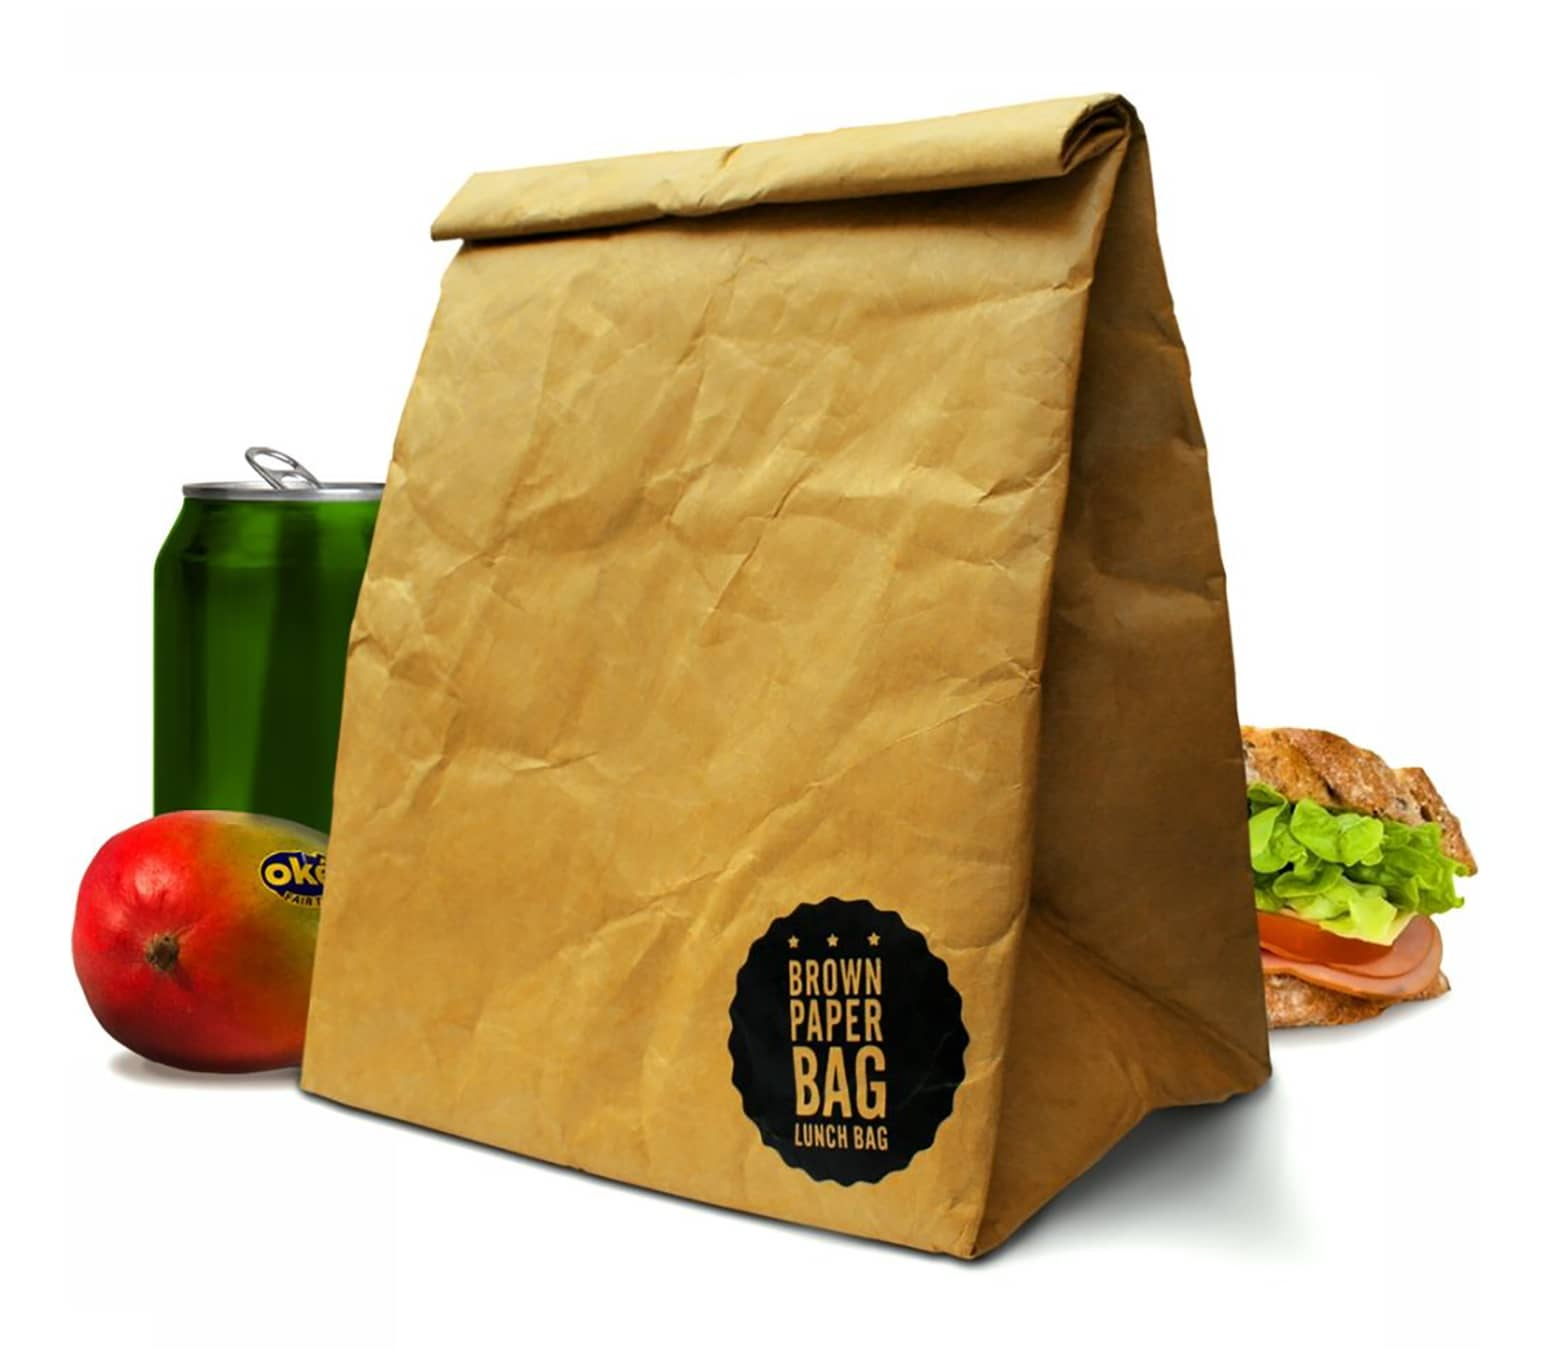 Brown Paper Bag - Insulated and Reusable Lunch Bag